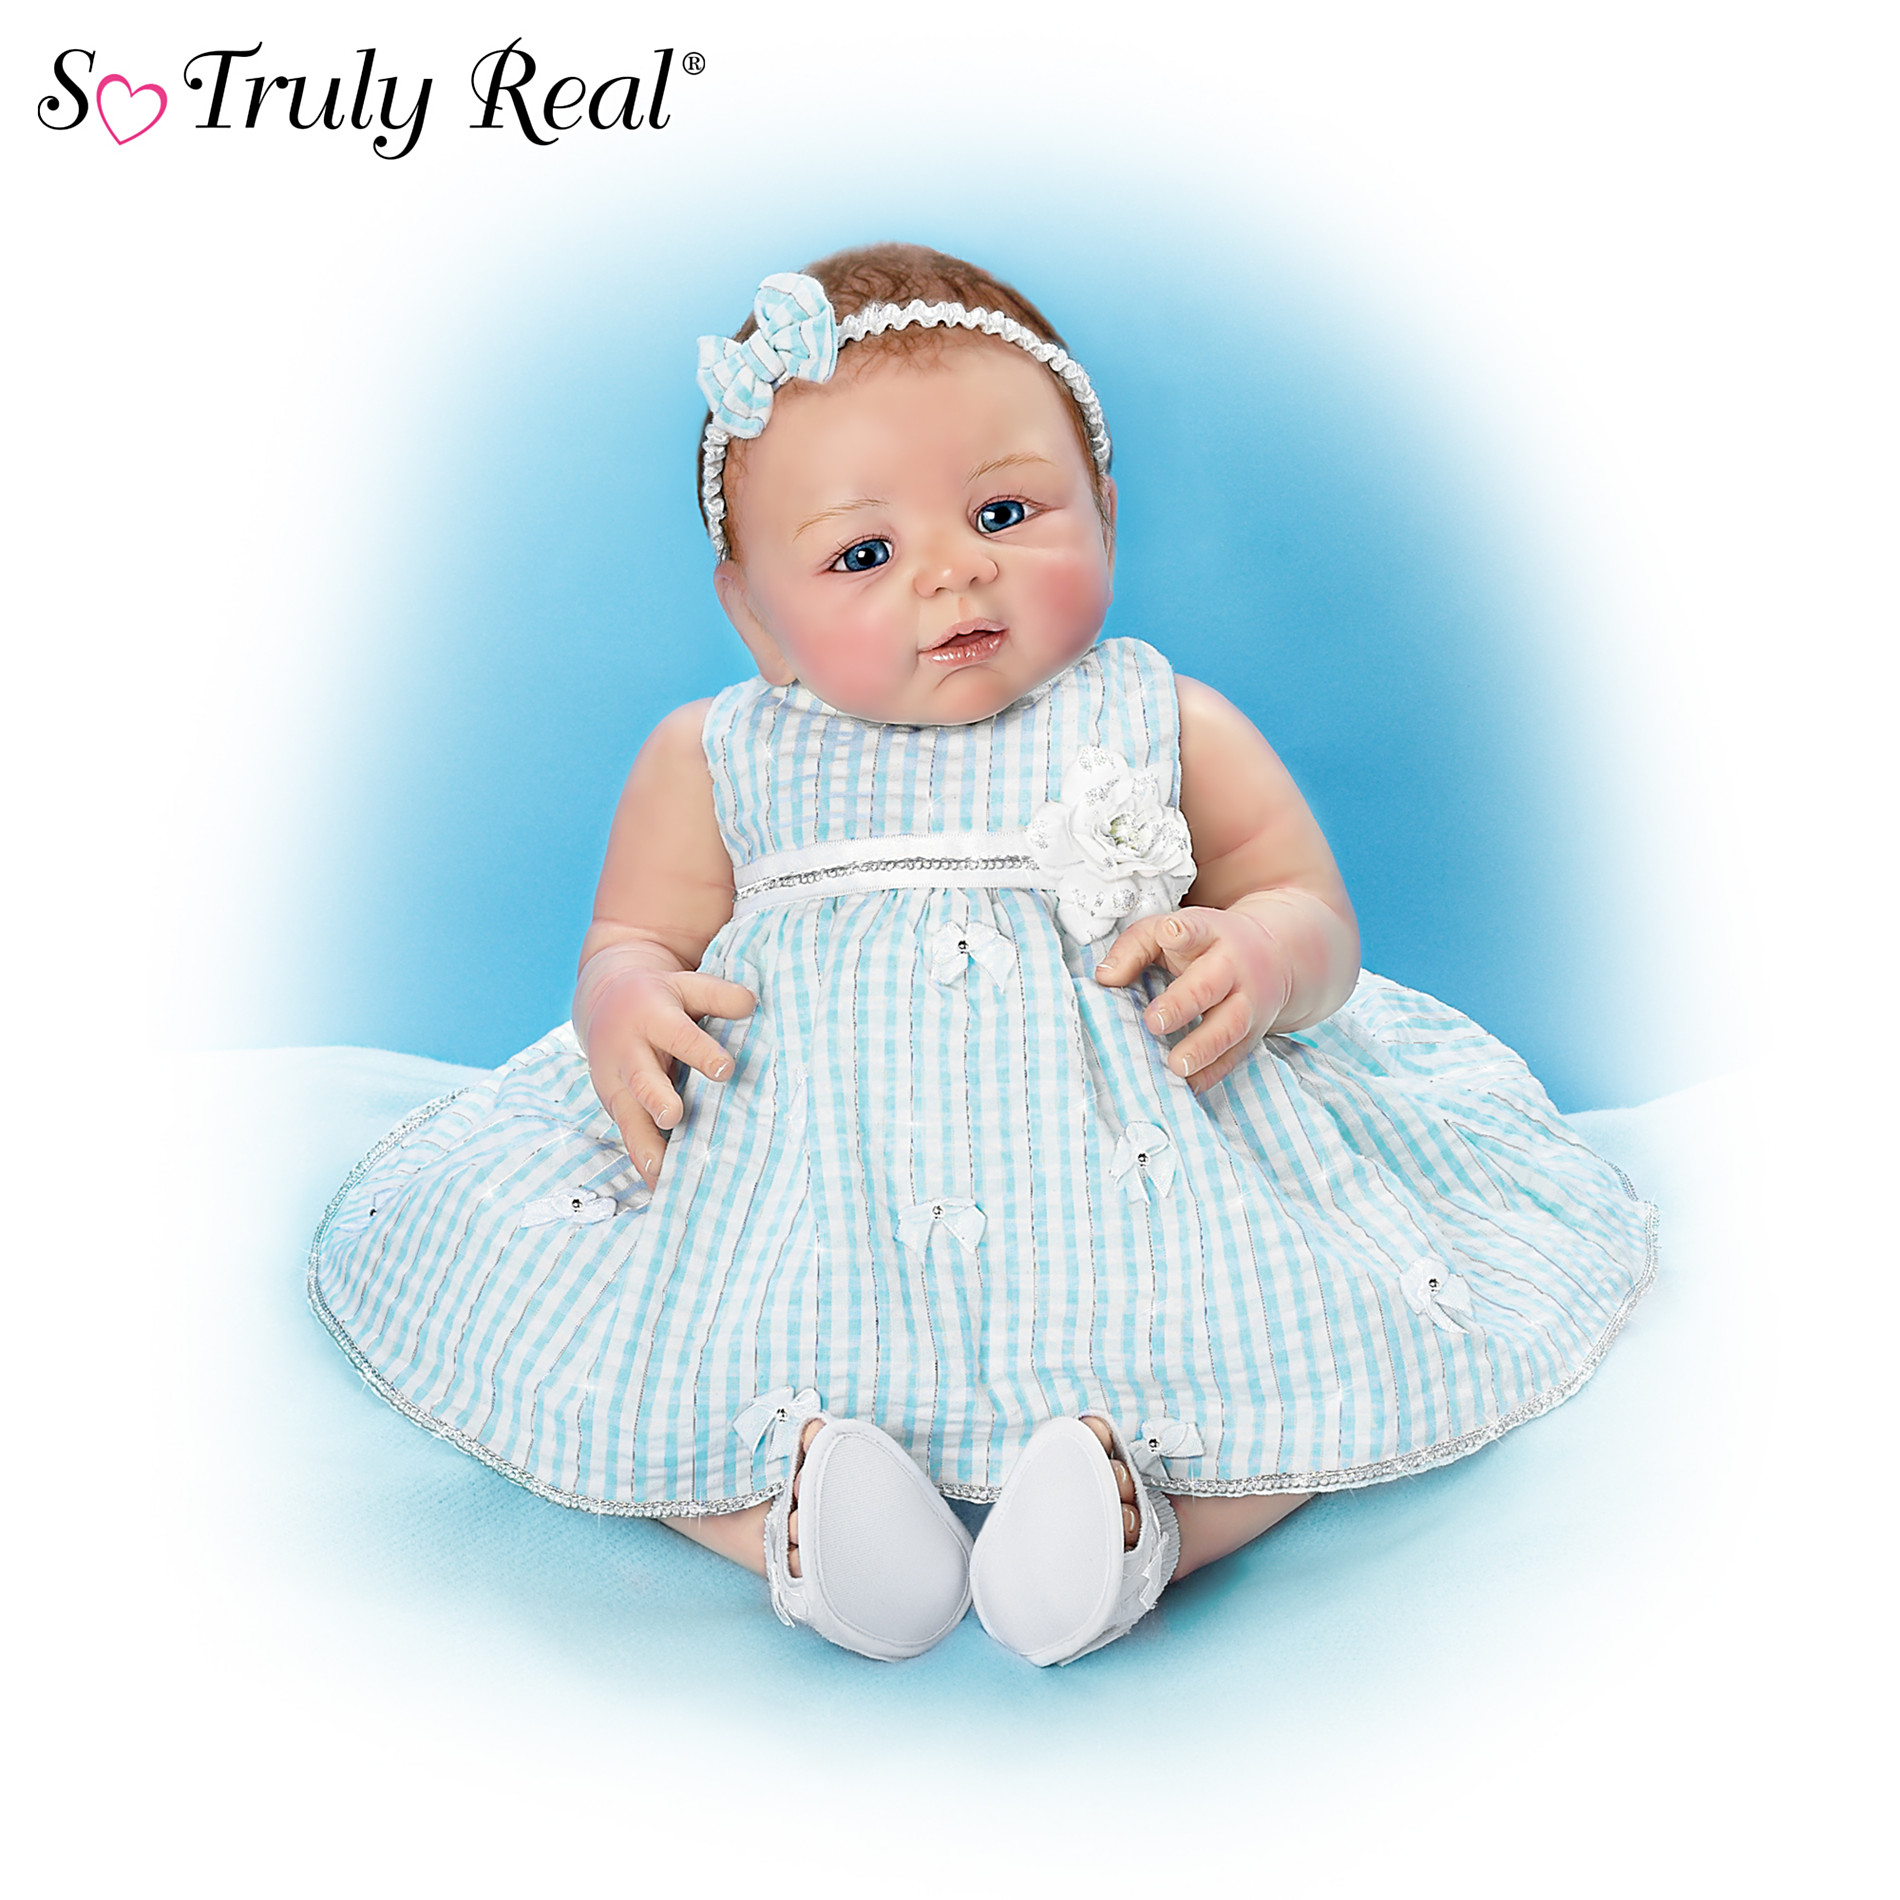 The Ashton-Drake Galleries So Truly Real Bows Of Beauty Lifelike Baby Doll at Sears.com